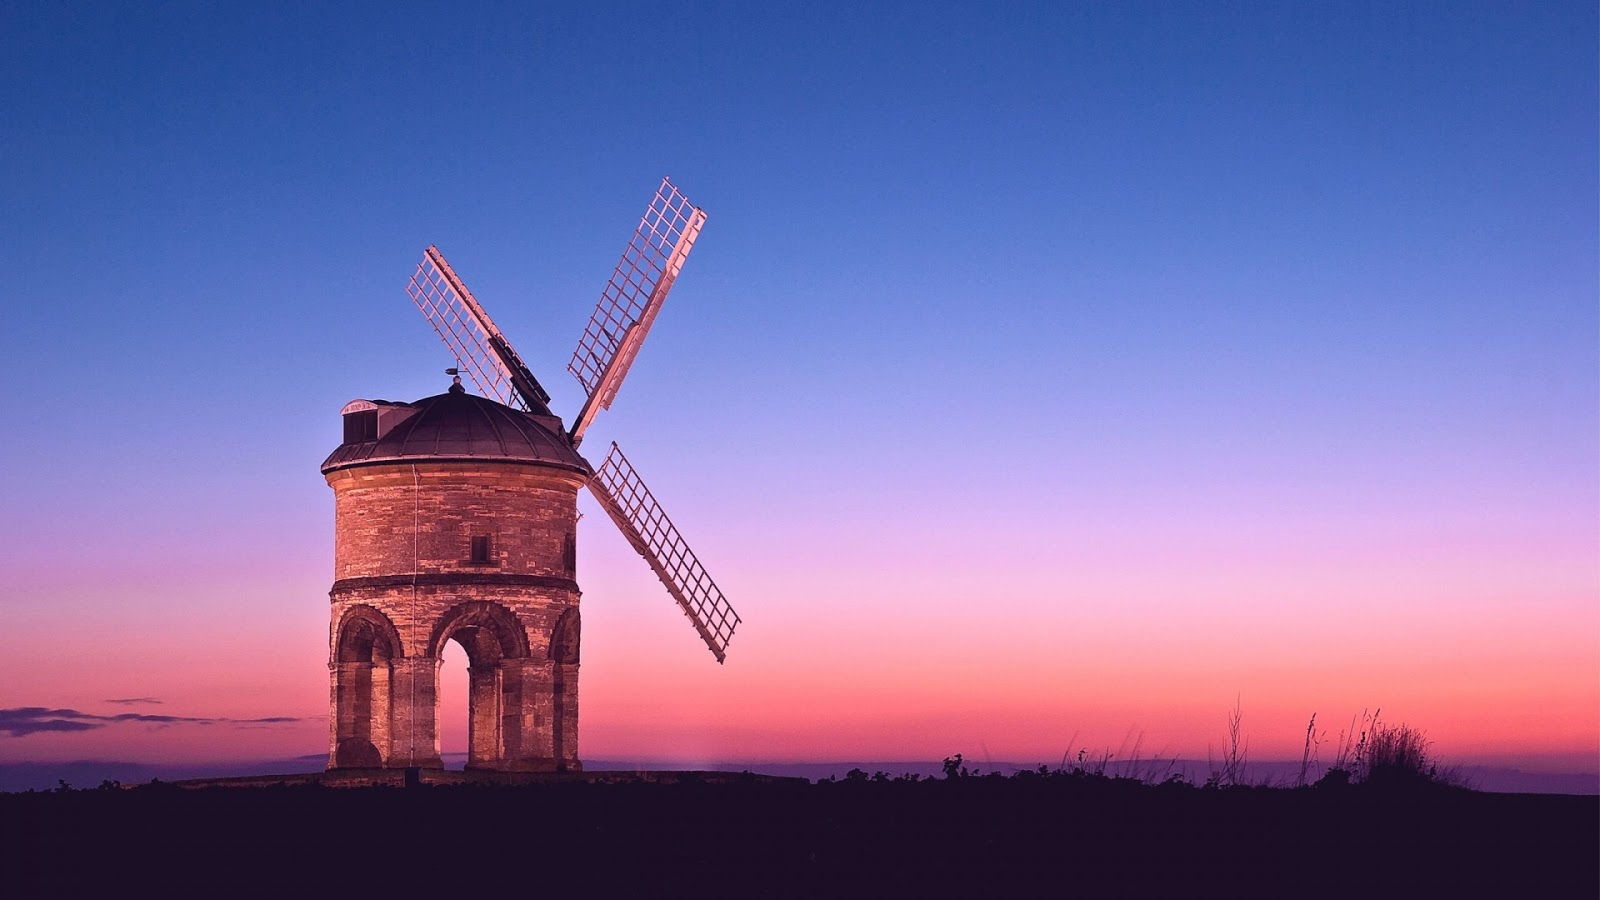 Vintage Cute Girl Wallpaper Windmill Mystery Wallpaper